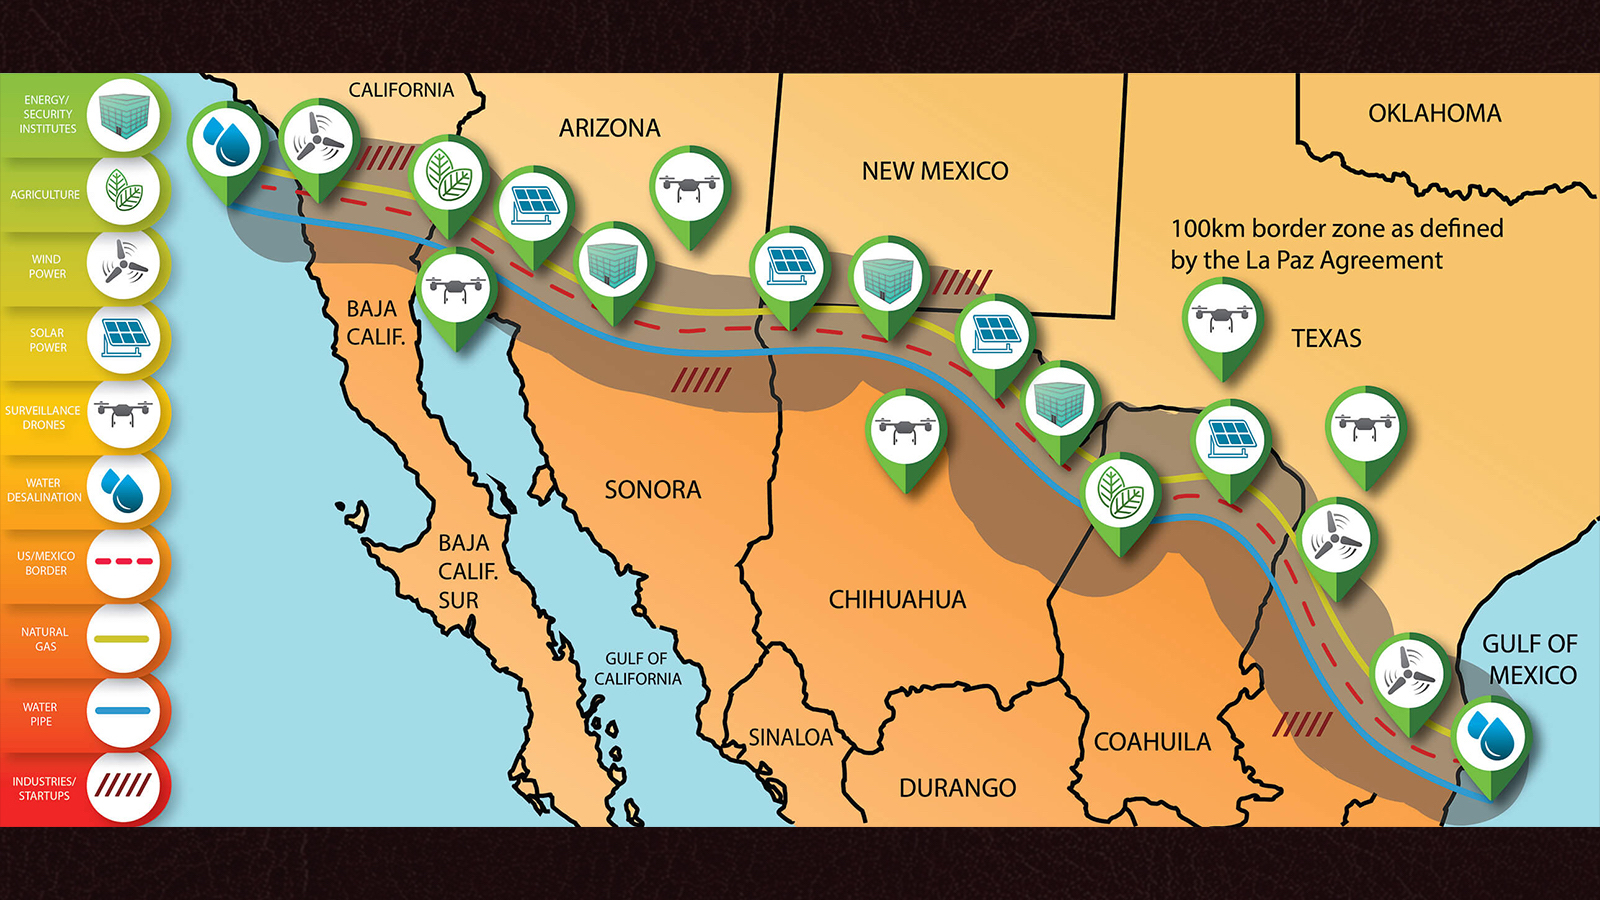 Map of US-Mexico border with symbols to display plan for an energy and water corridor